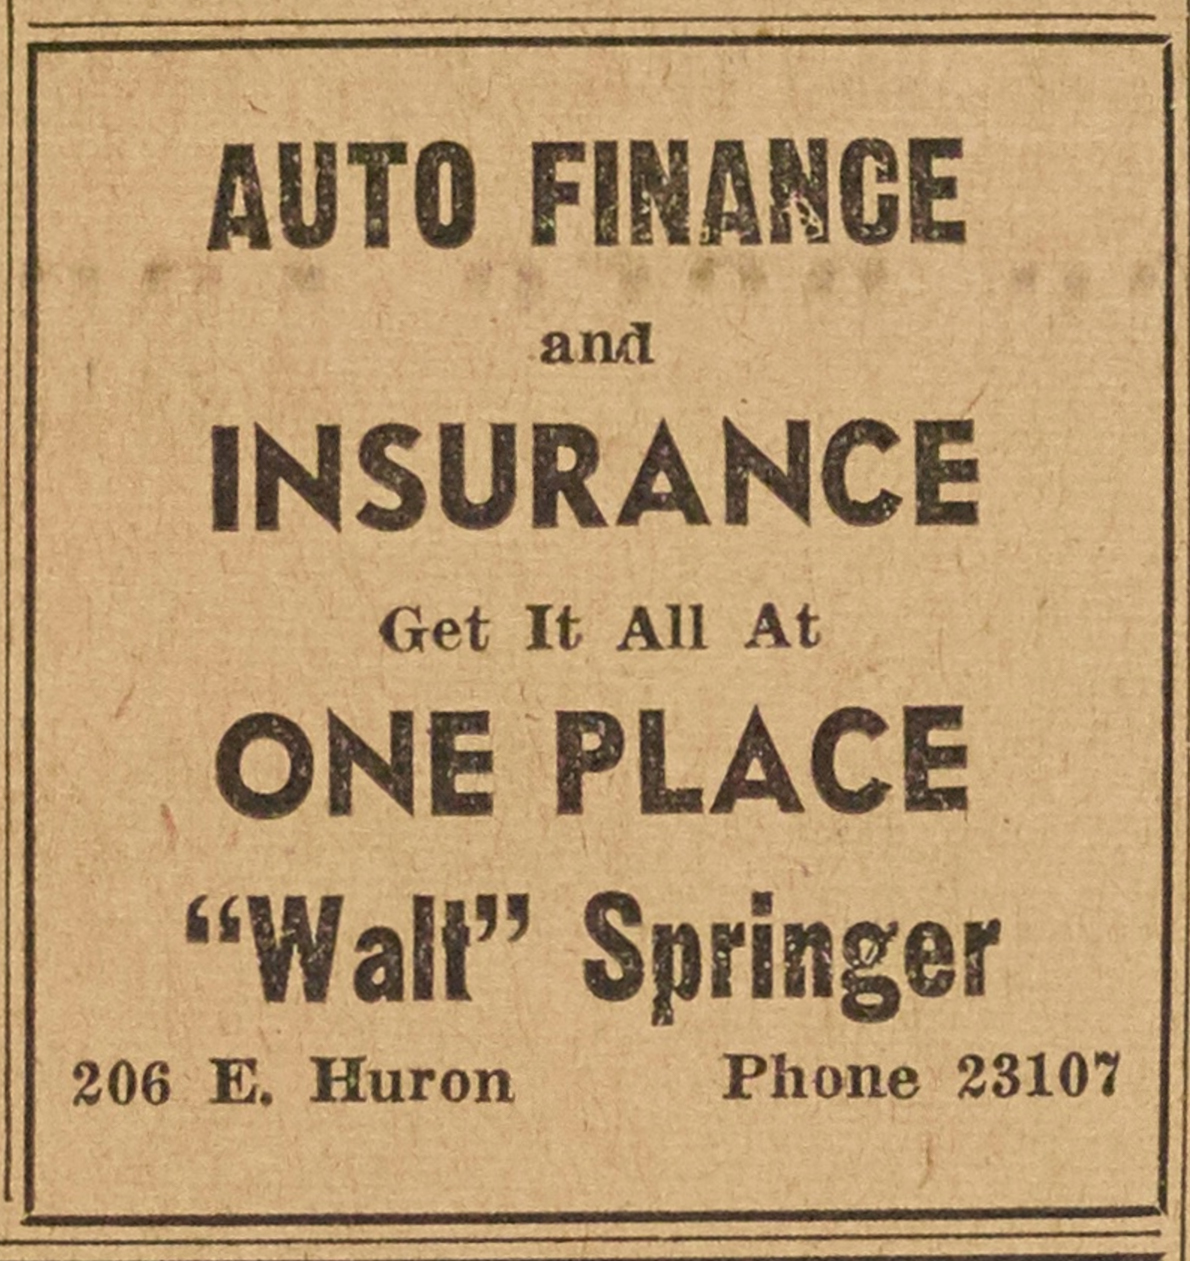 Auto Finance and Insurance - Walt Springer image